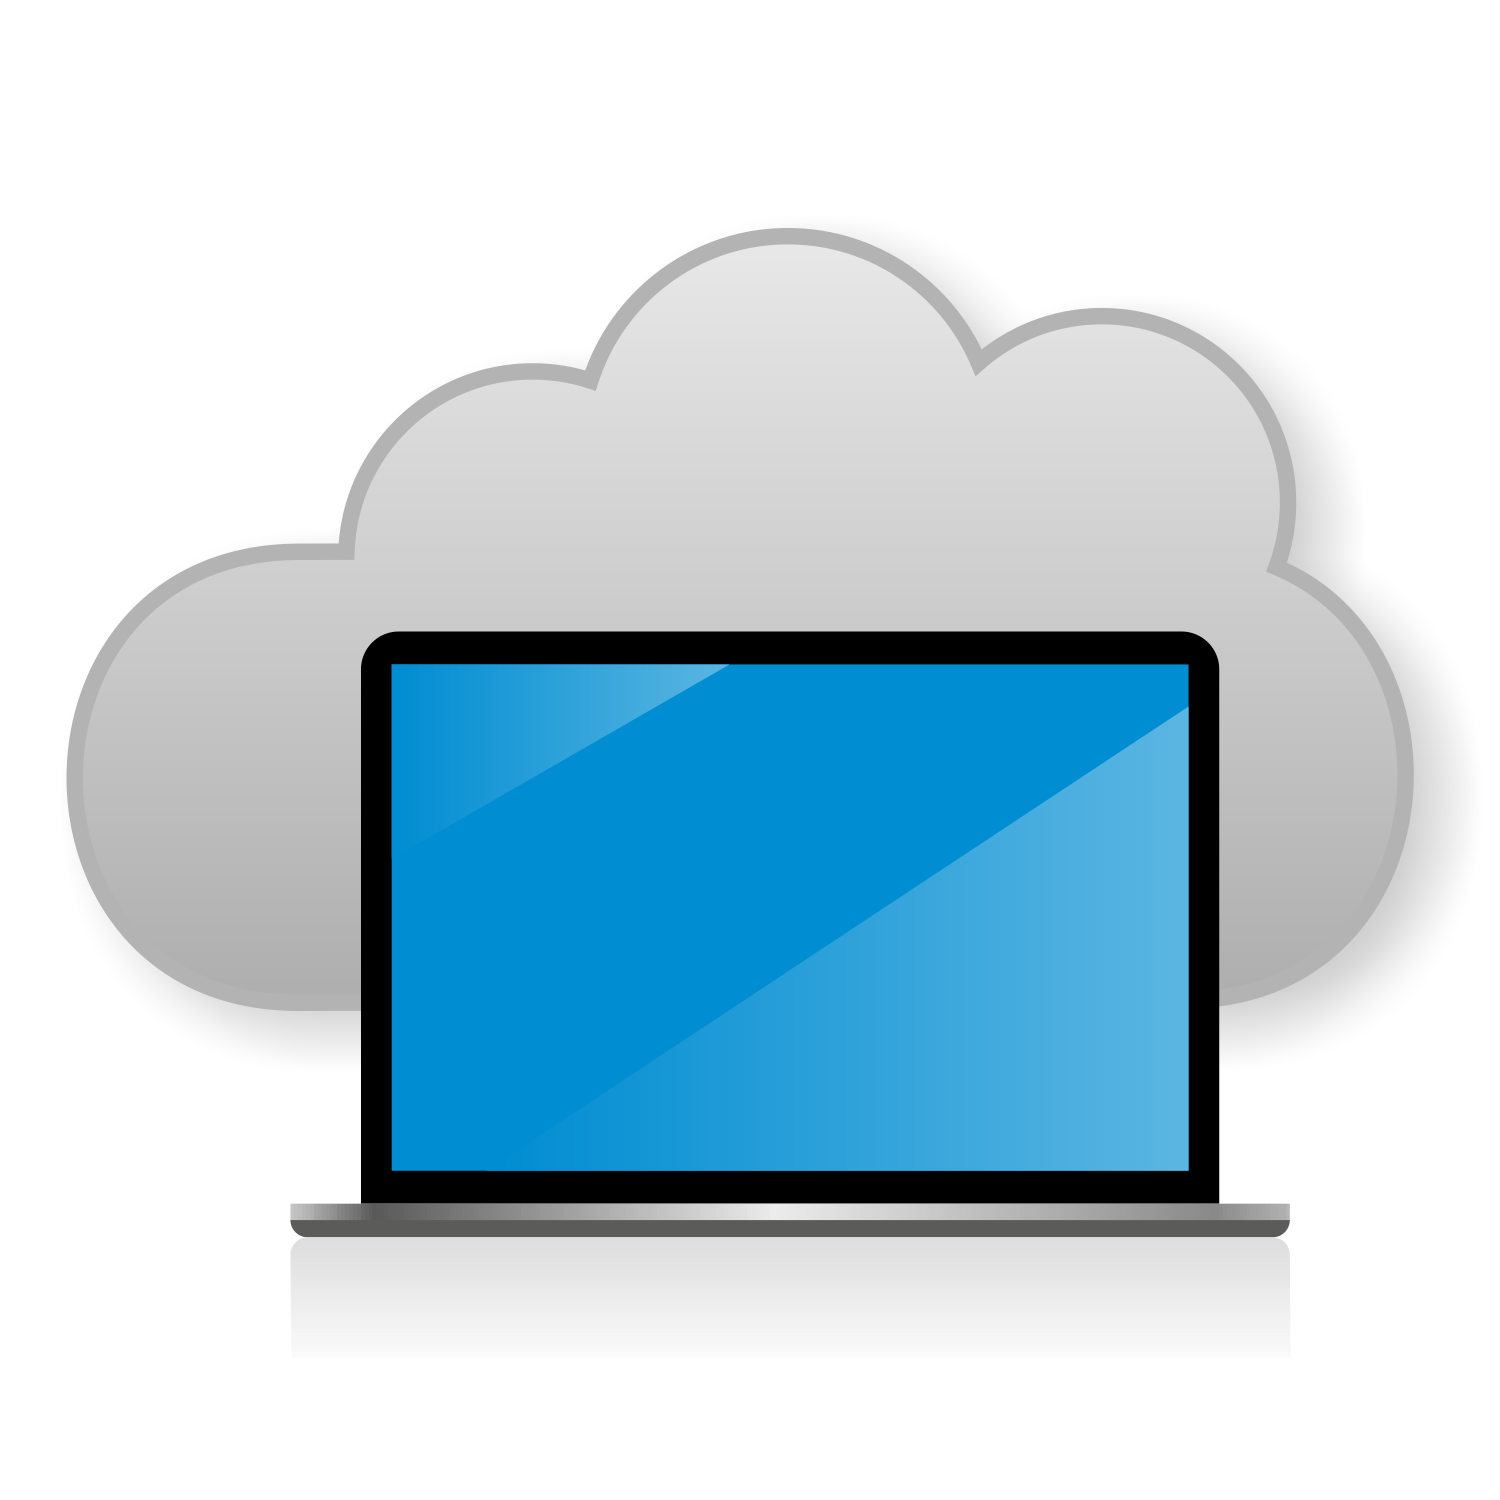 Clouds clipart cloud computing Computing concept for concept computing